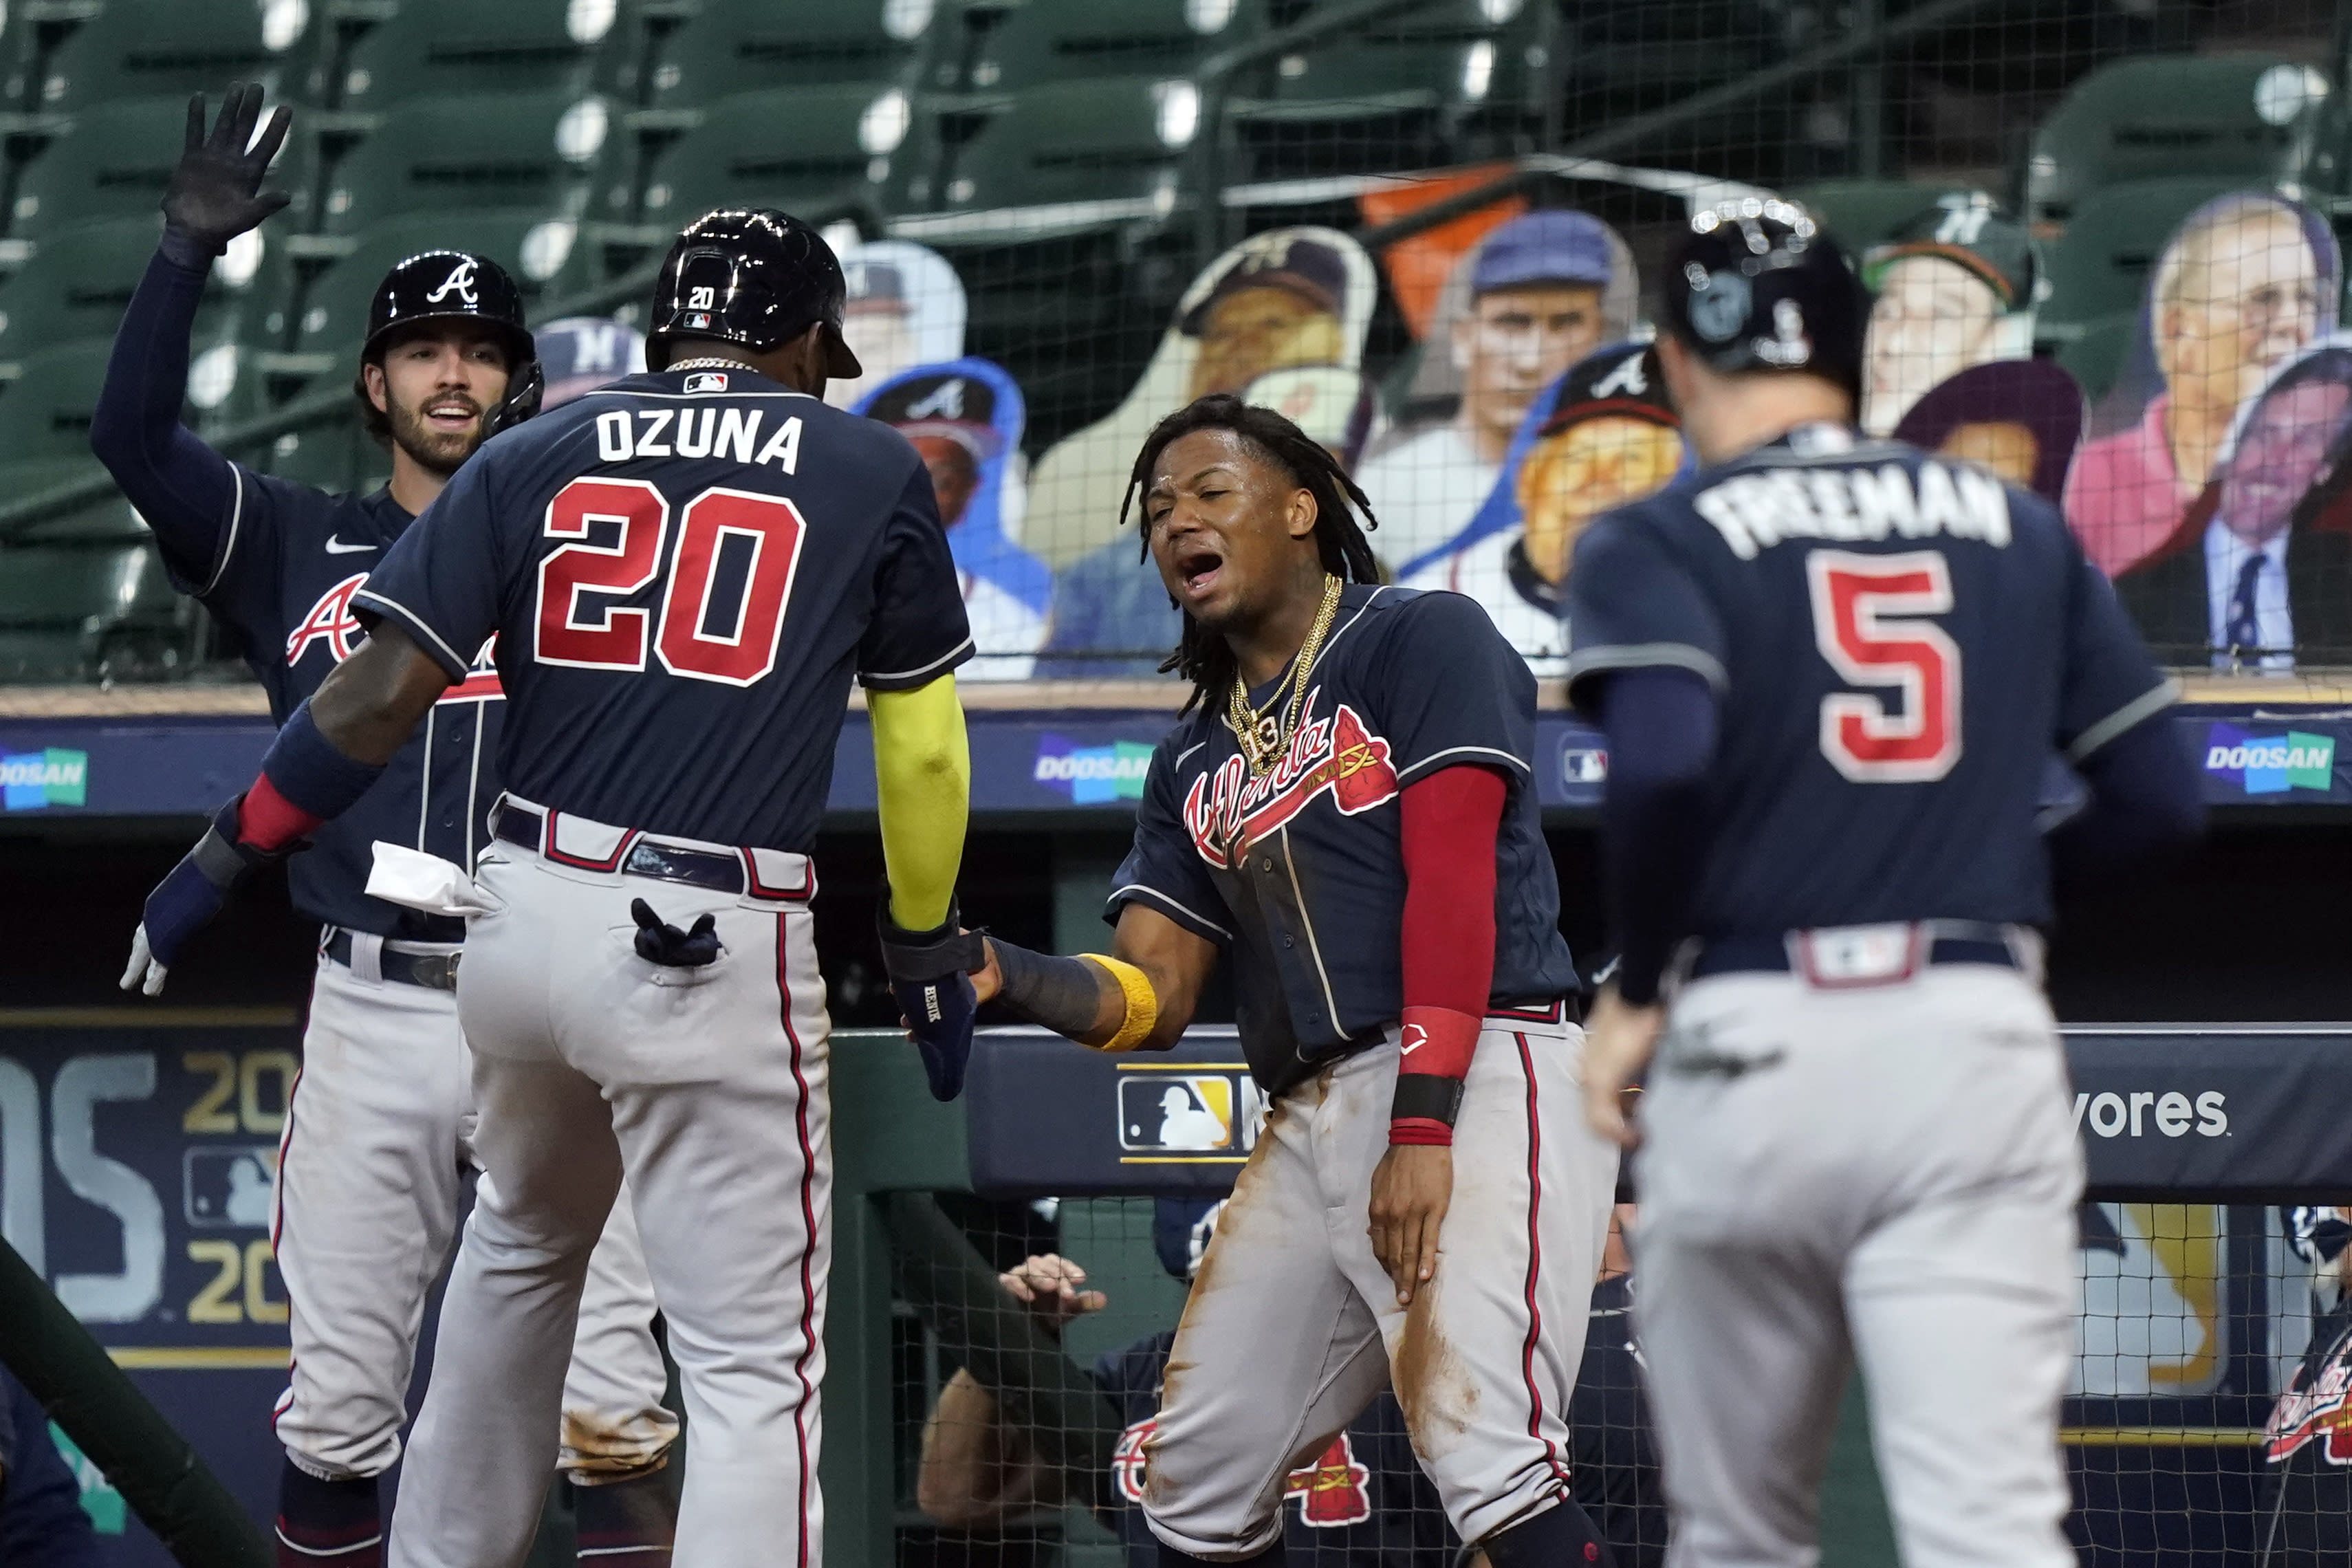 Atlanta Braves' Ronald Acuna Jr., center, and Dansby Swanson, left, congratulate Marcell Ozuna (20) after Ozuna and Freddie Freeman (5) scored in the third inning agains the Miami Marlins in Game 3 of a baseball National League Division Series, Thursday, Oct. 8, 2020, in Houston. (AP Photo/David J. Phillip)